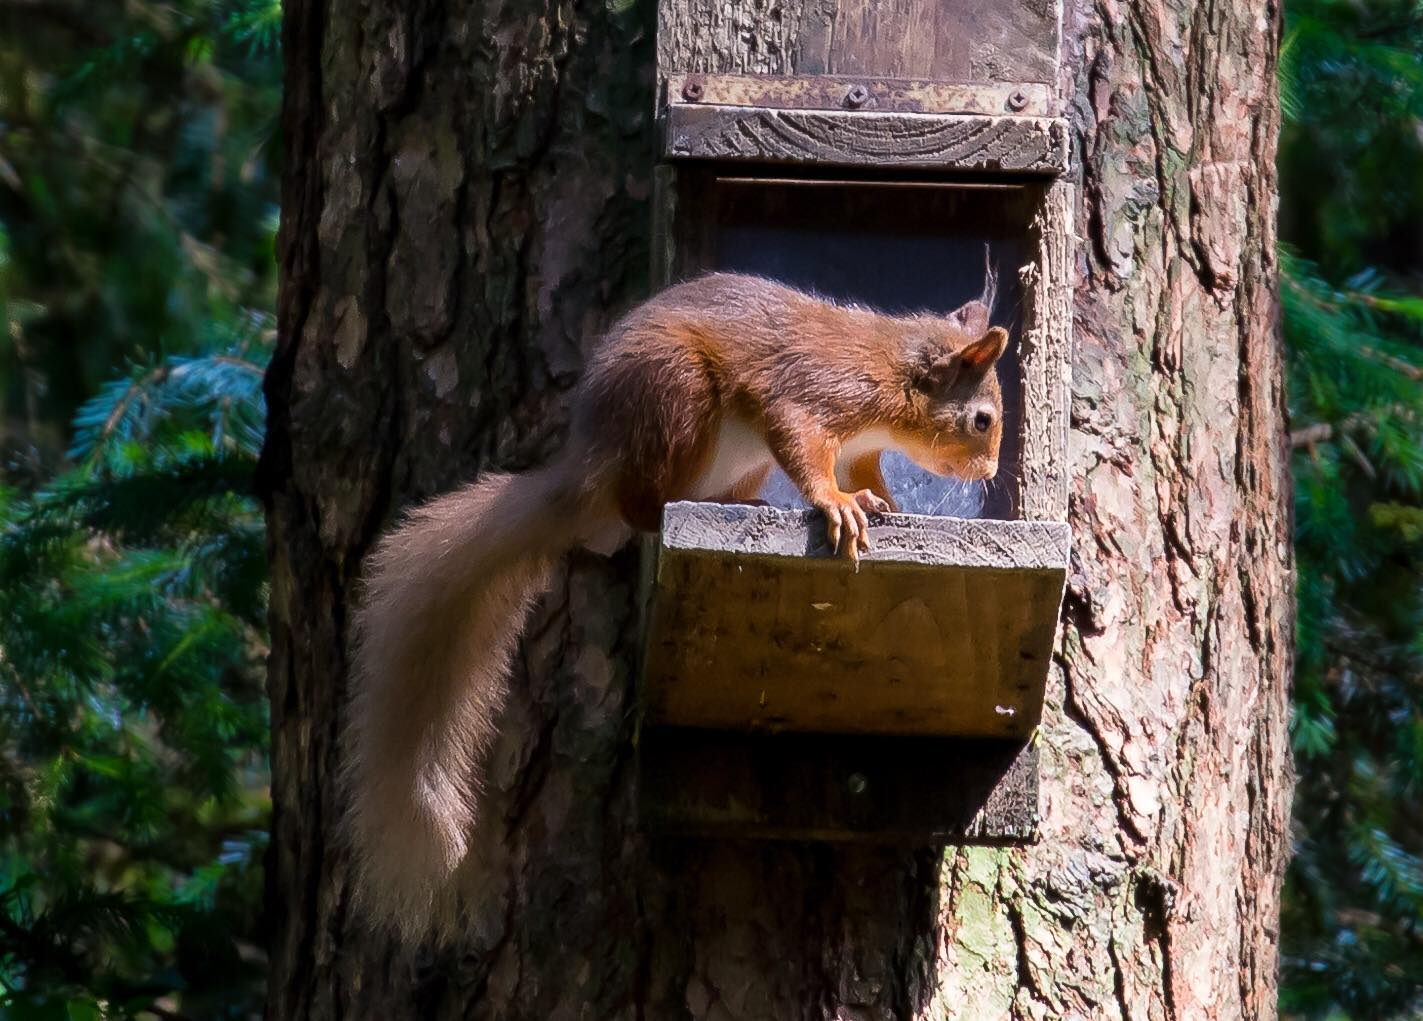 Red squirrel next to a feeder box